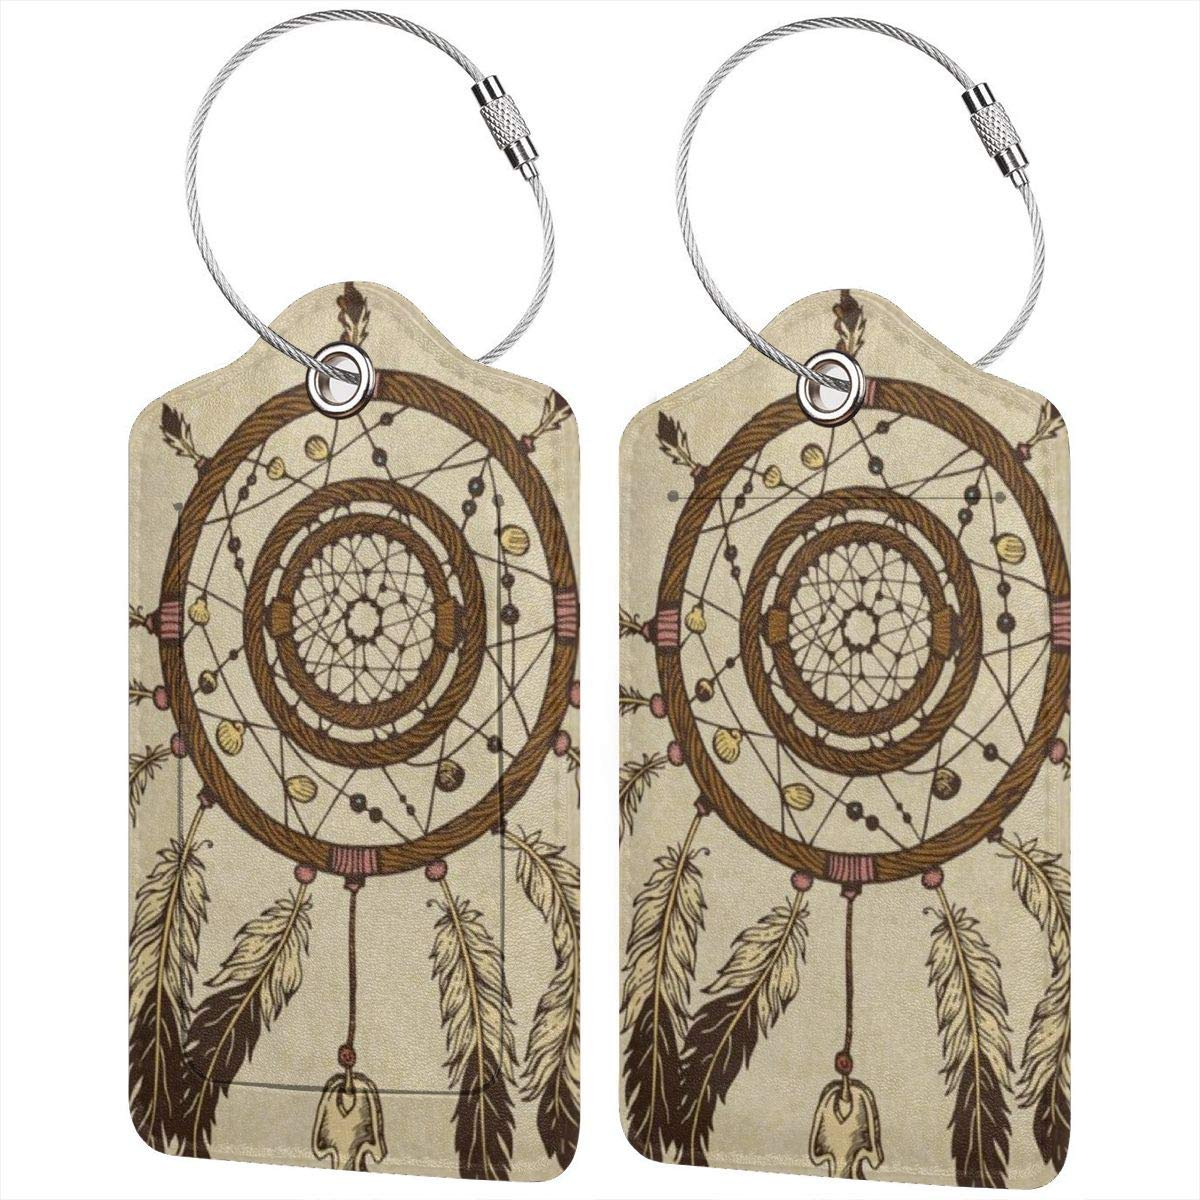 Dream Catcher Tribal Ethnic Feathers Leather Luggage Tags Personalized Travel Accessories With Adjustable Strap